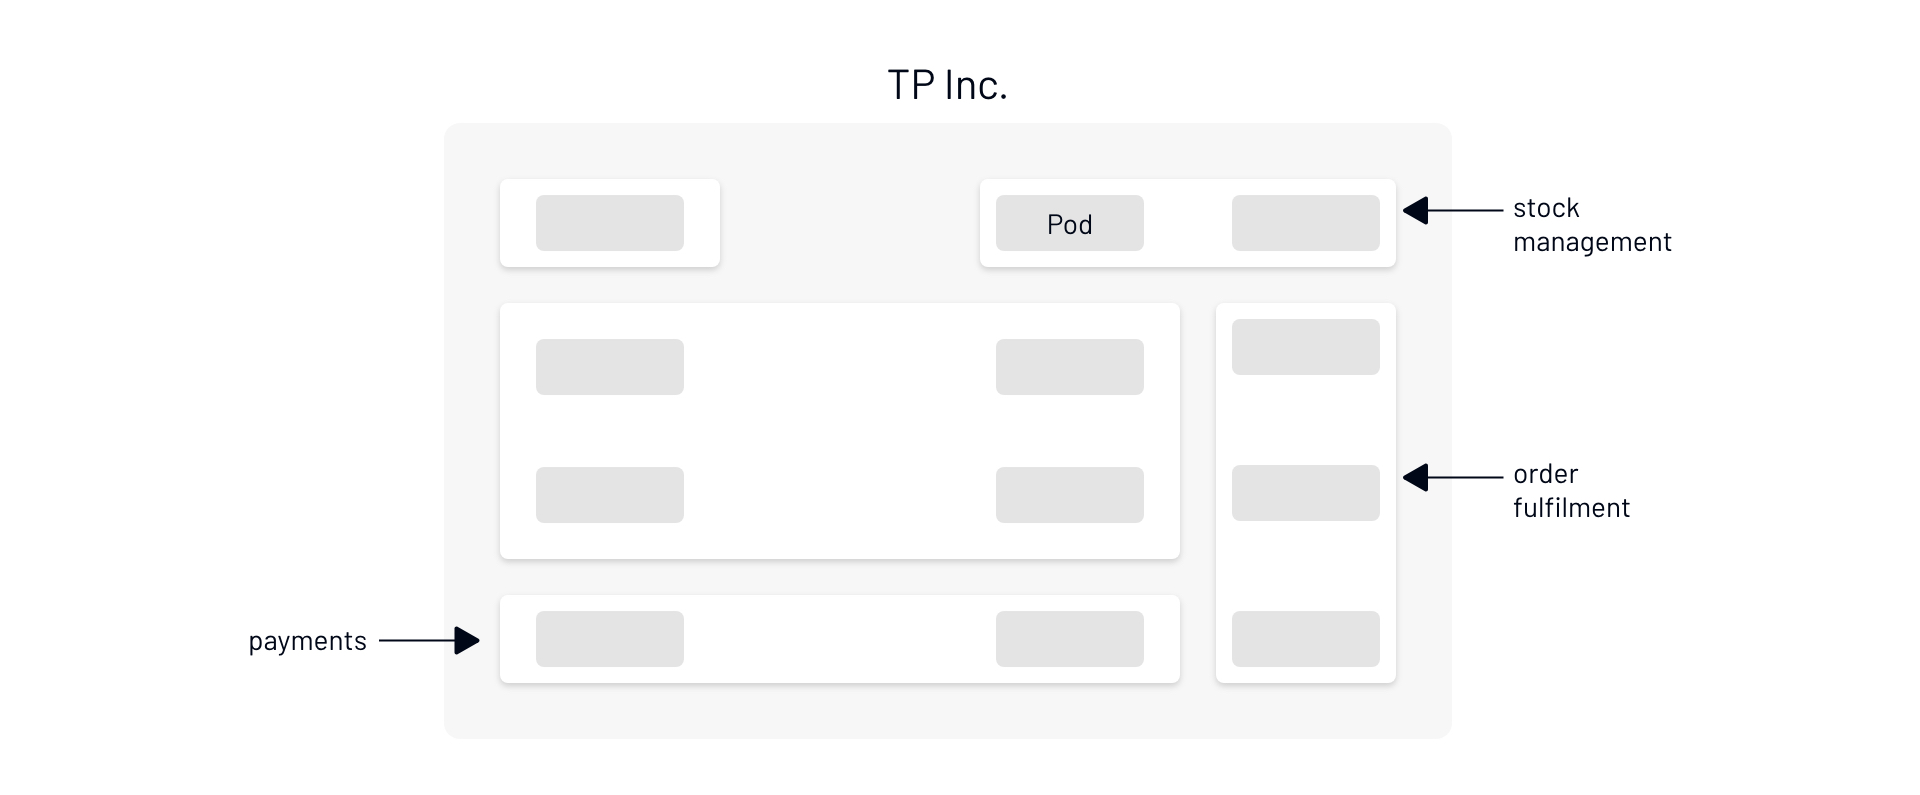 Architecture diagram showing how TP Inc's services are arranged - there is a pod inside a service instance which is inside a service grouping